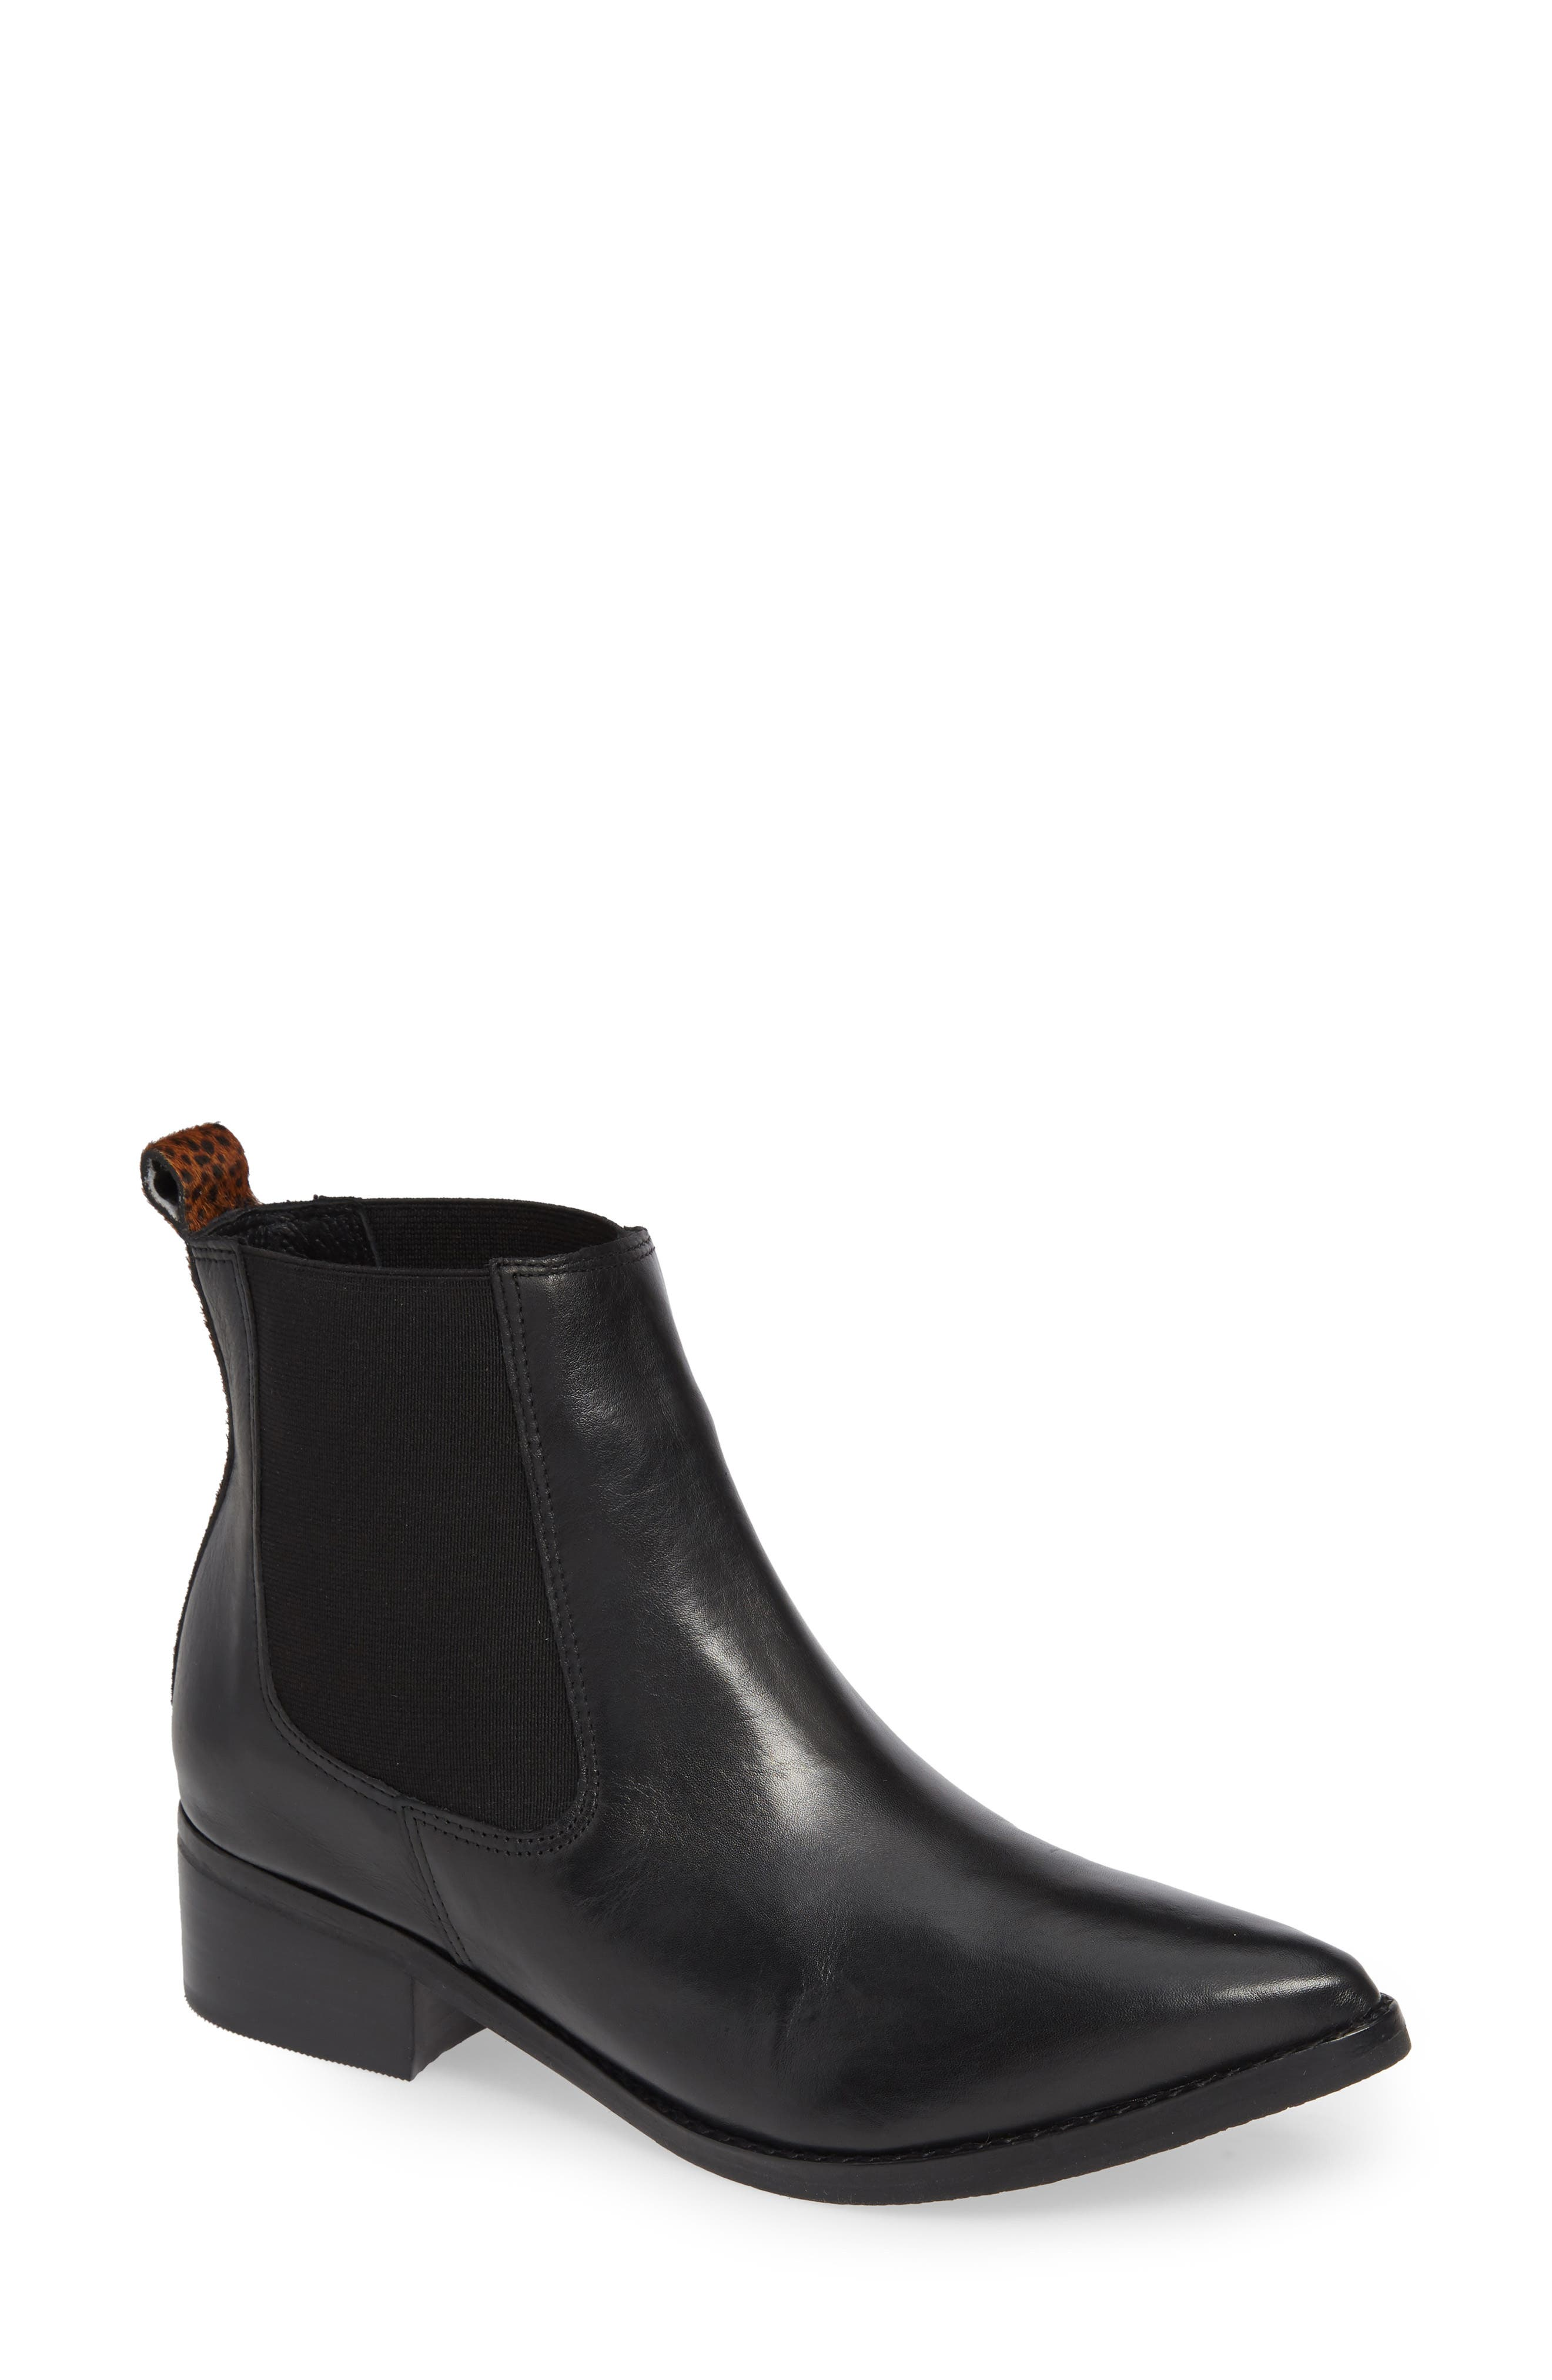 MATISSE Moscow Chelsea Boot in Black Leather